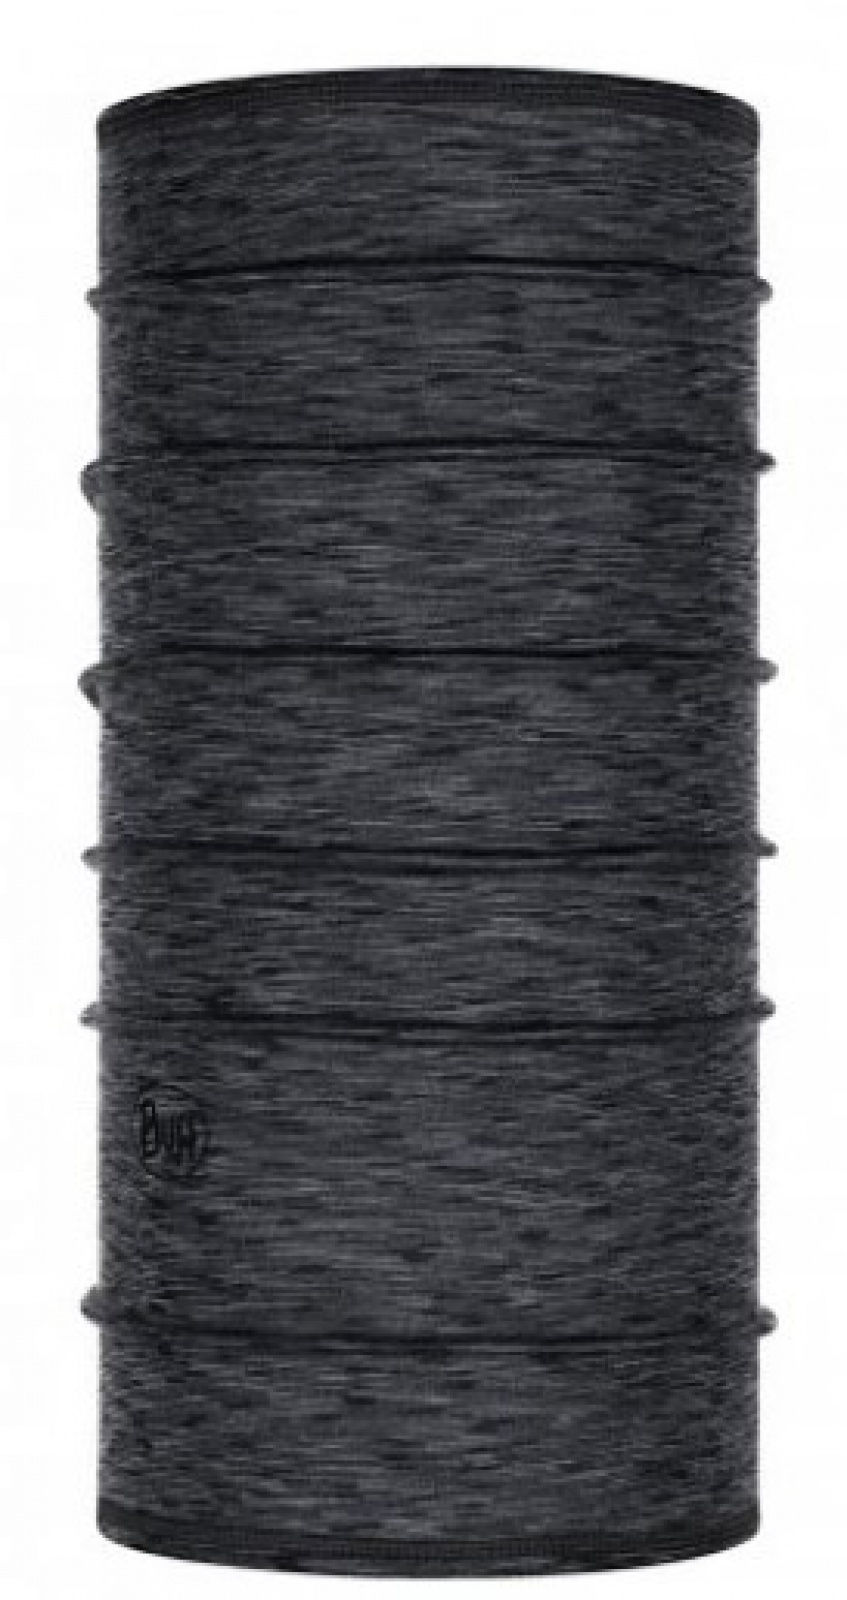 Бандана Buff Lightweight Merino Wool Buff® GRAPHITE MULTI STRIPES шерстяная GRAPHITE MULTI STRIPES